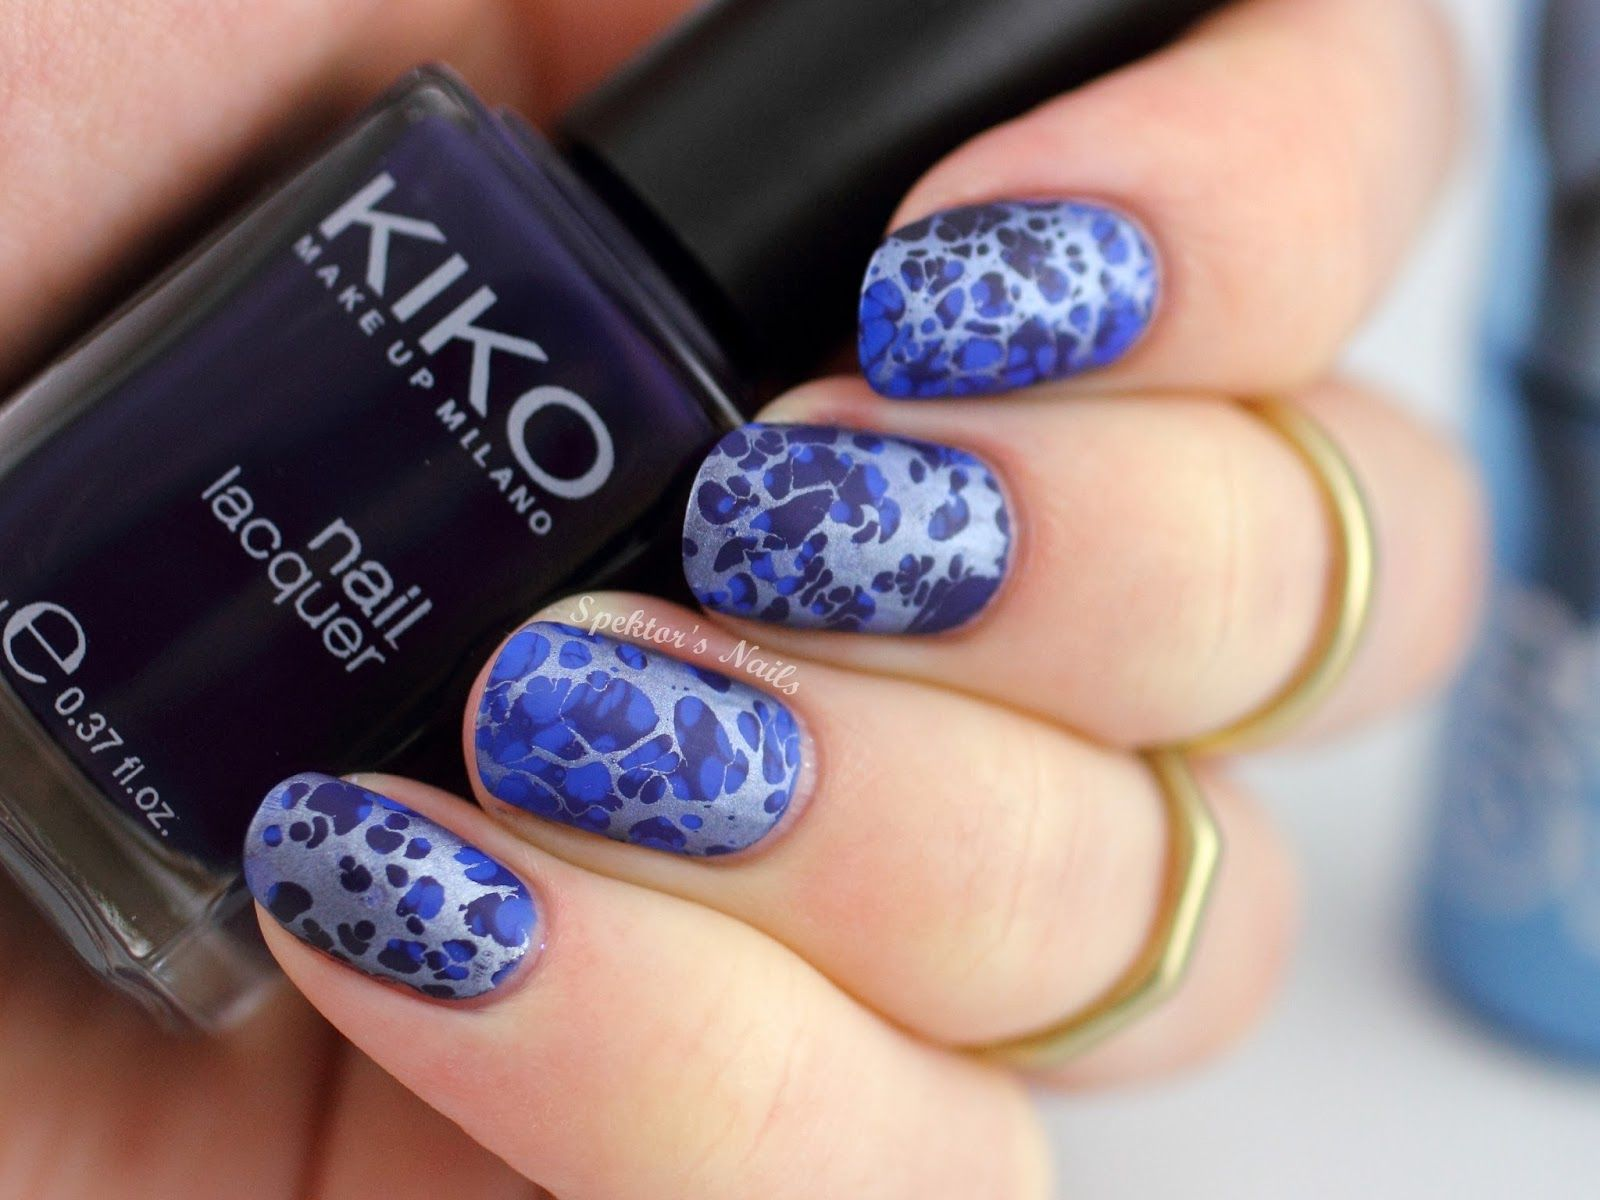 Water Spotted Nail Art feat. Model\'s Own - Chrome Indigo ...